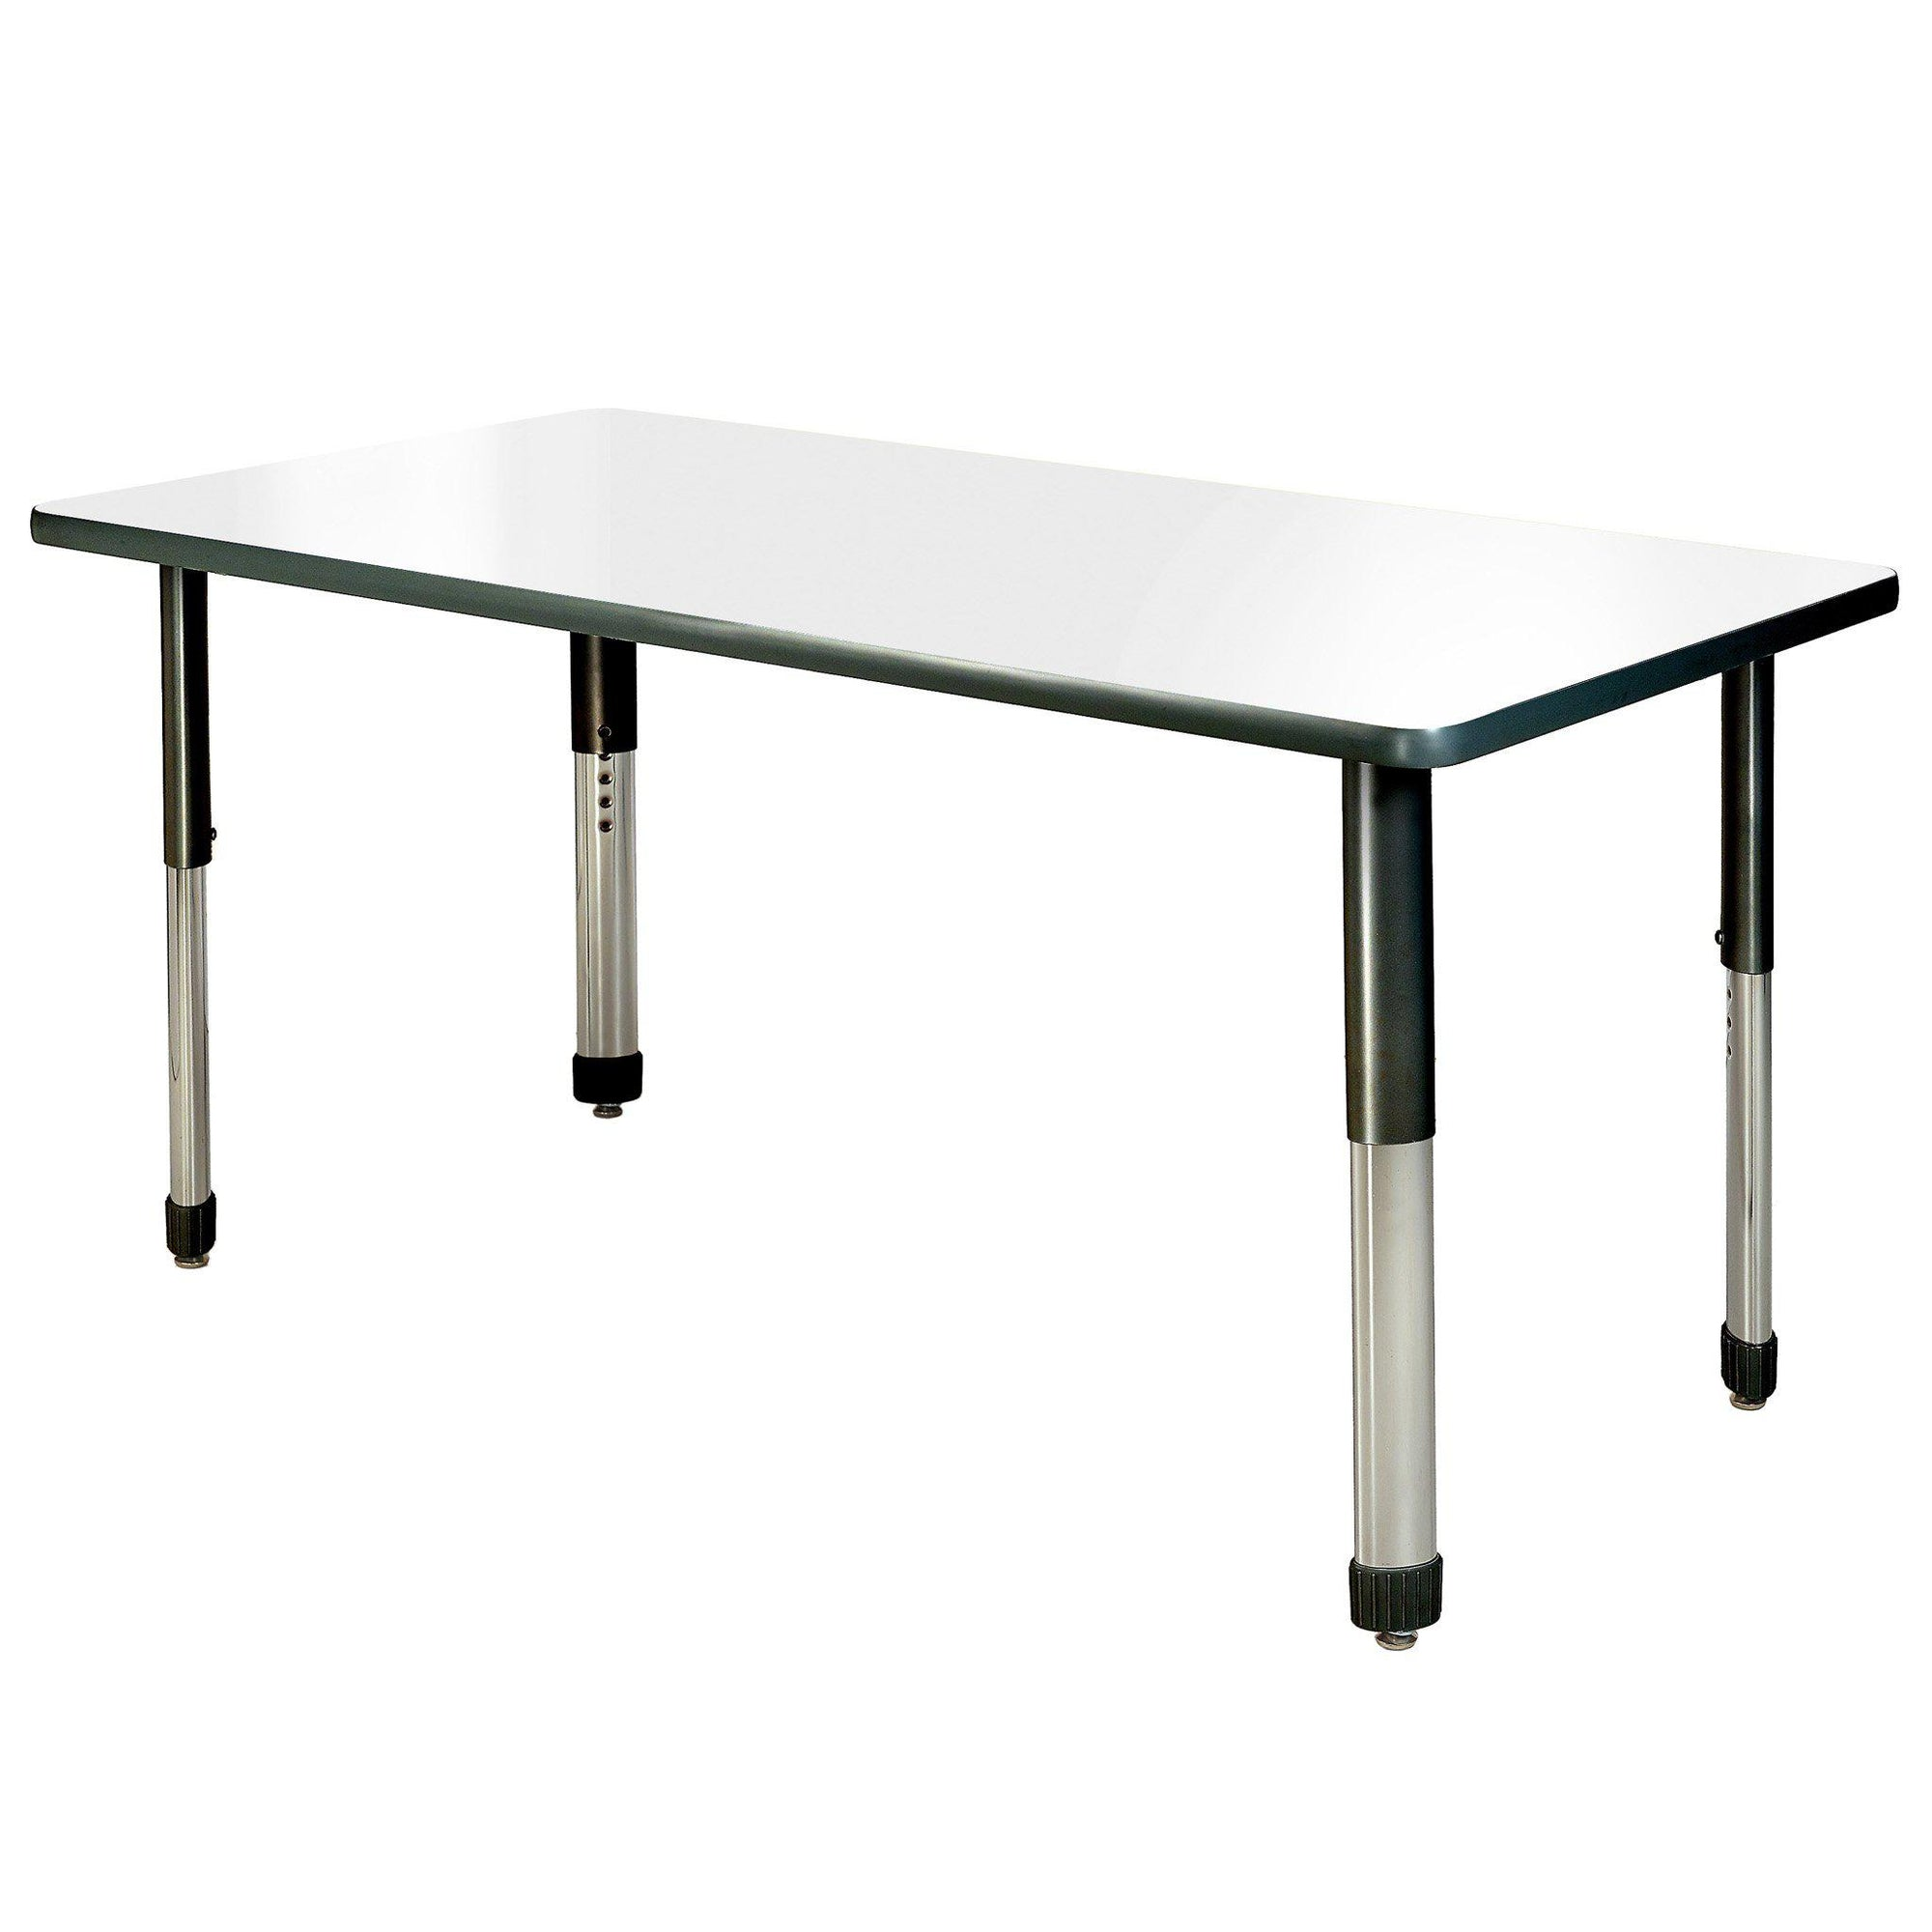 "Aero Dry Erase Activity Table, 36"" x 72"" Rectangle, Oval Adjustable Height Legs"